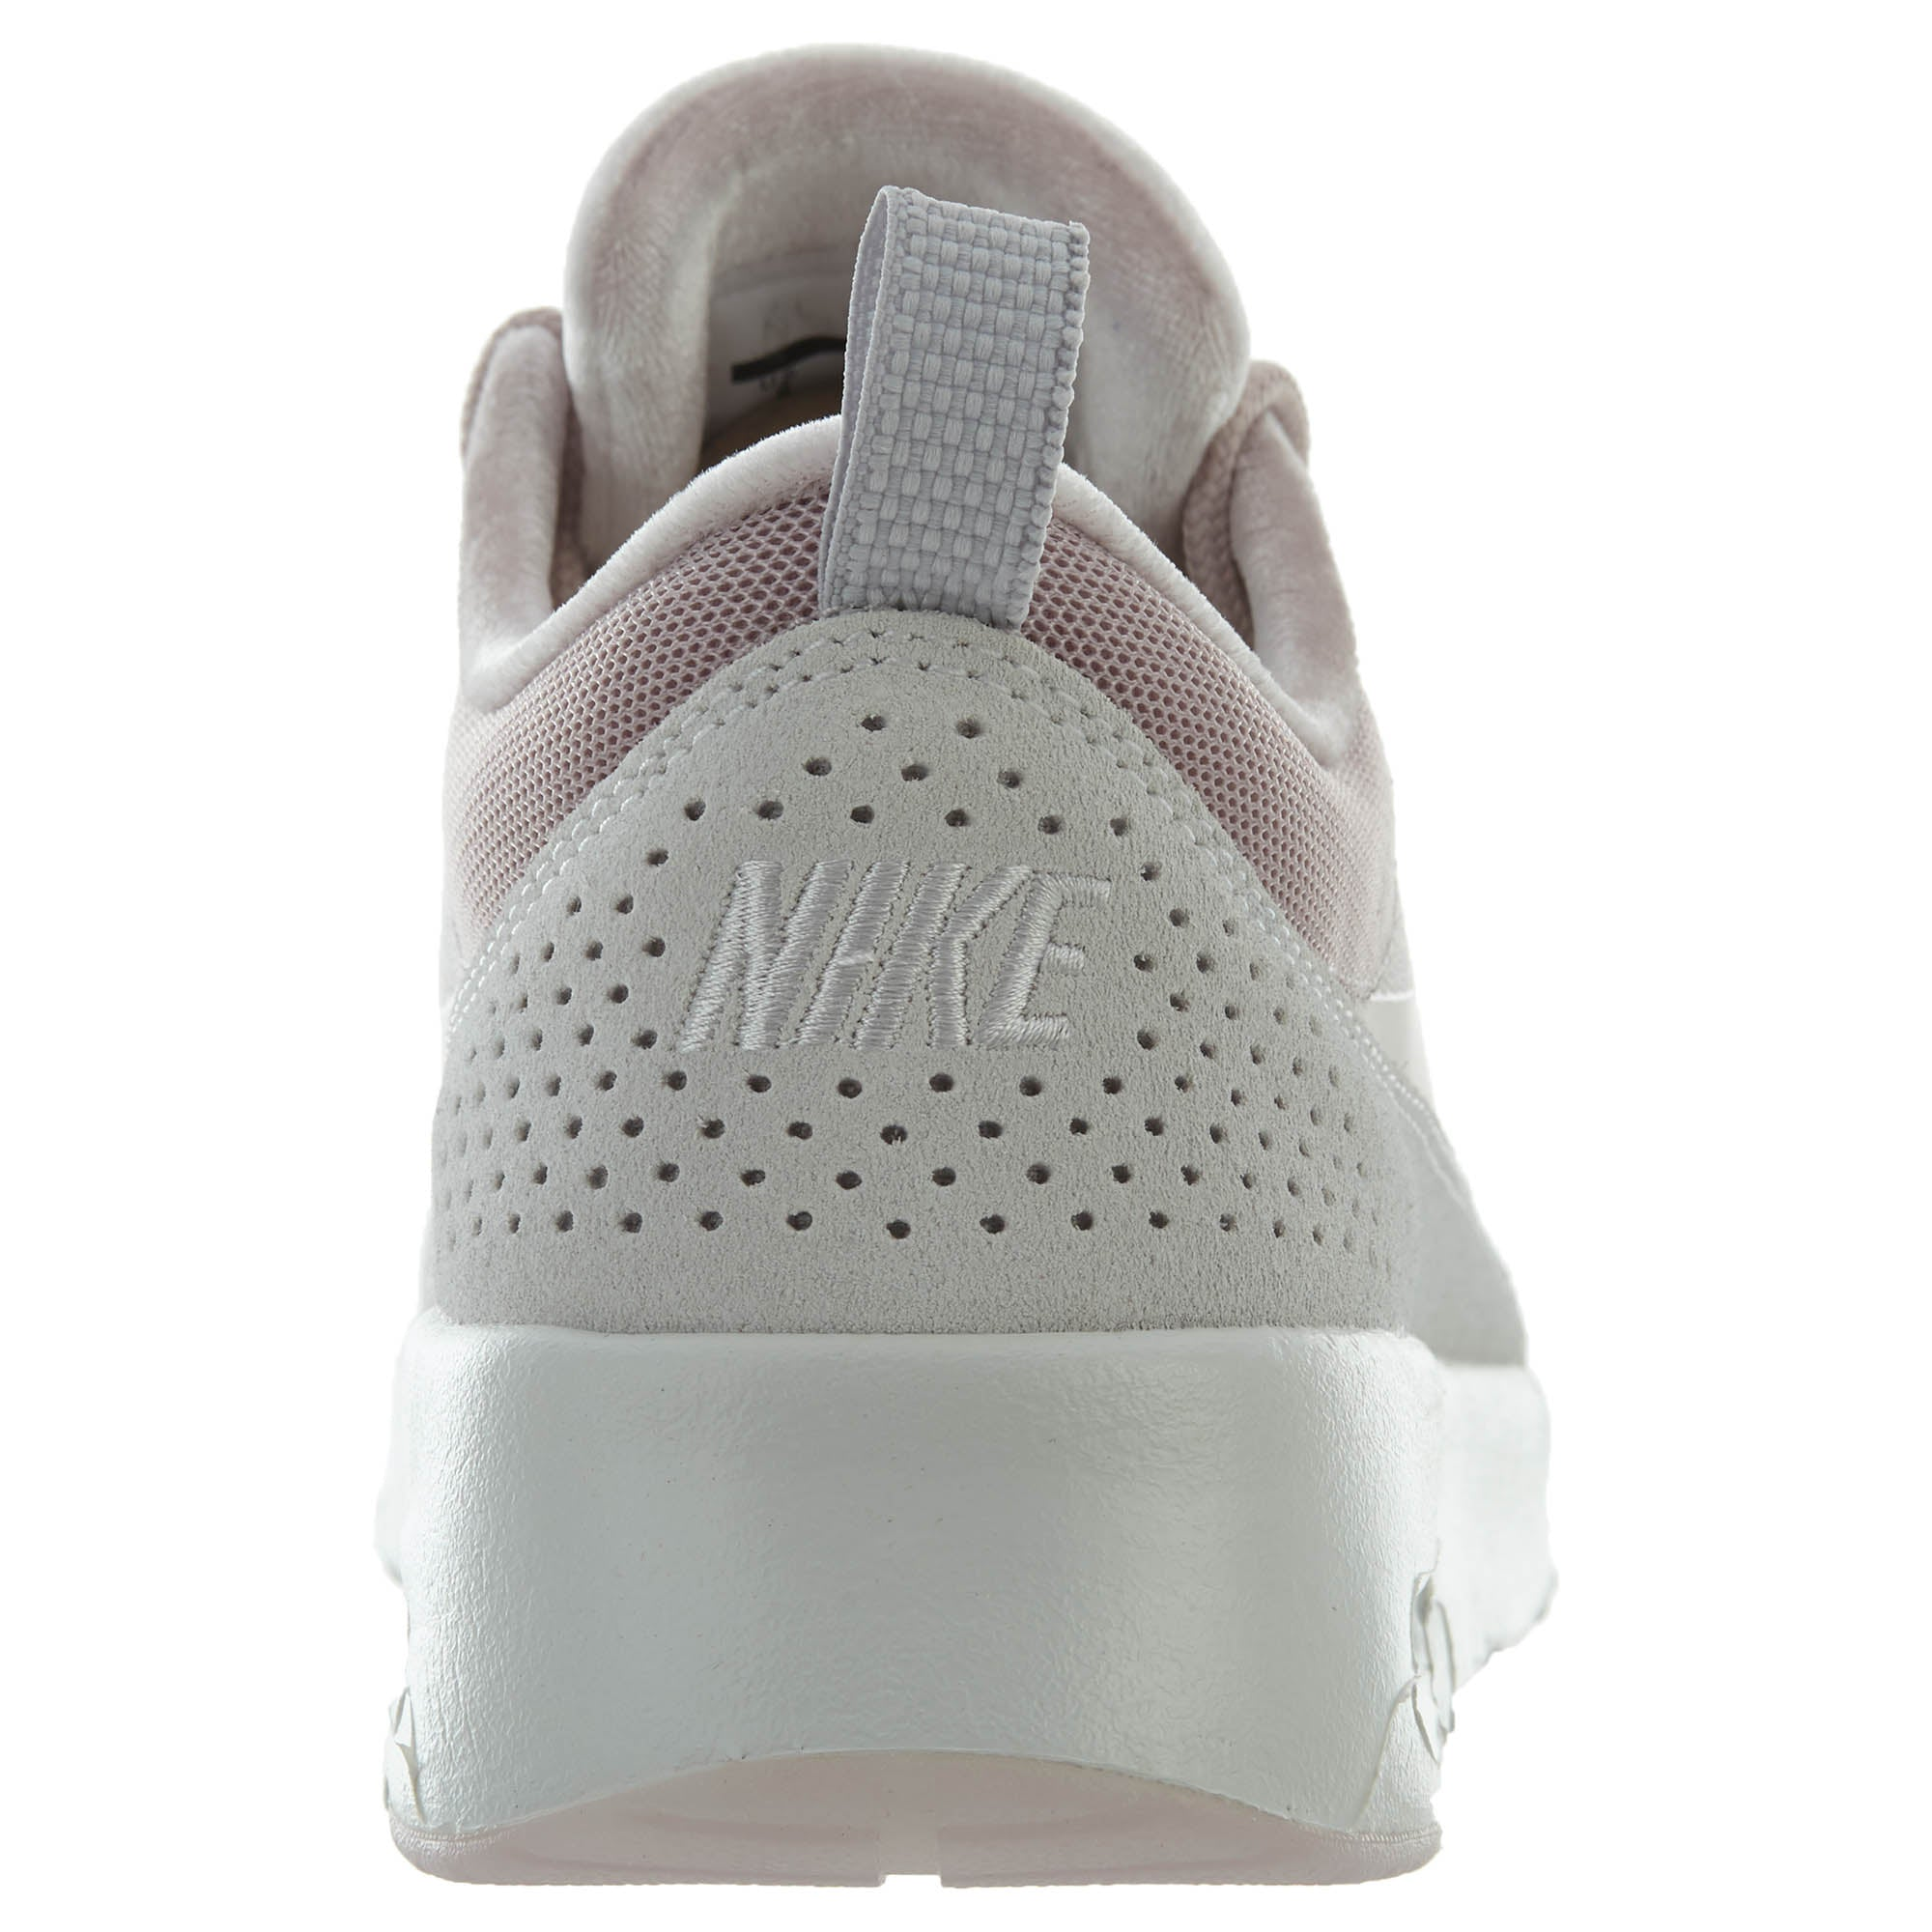 low priced 95513 d7fed Nike Air Max Thea Lx Womens Style   881203. NIKE   Athletic Shoes   Sneakers